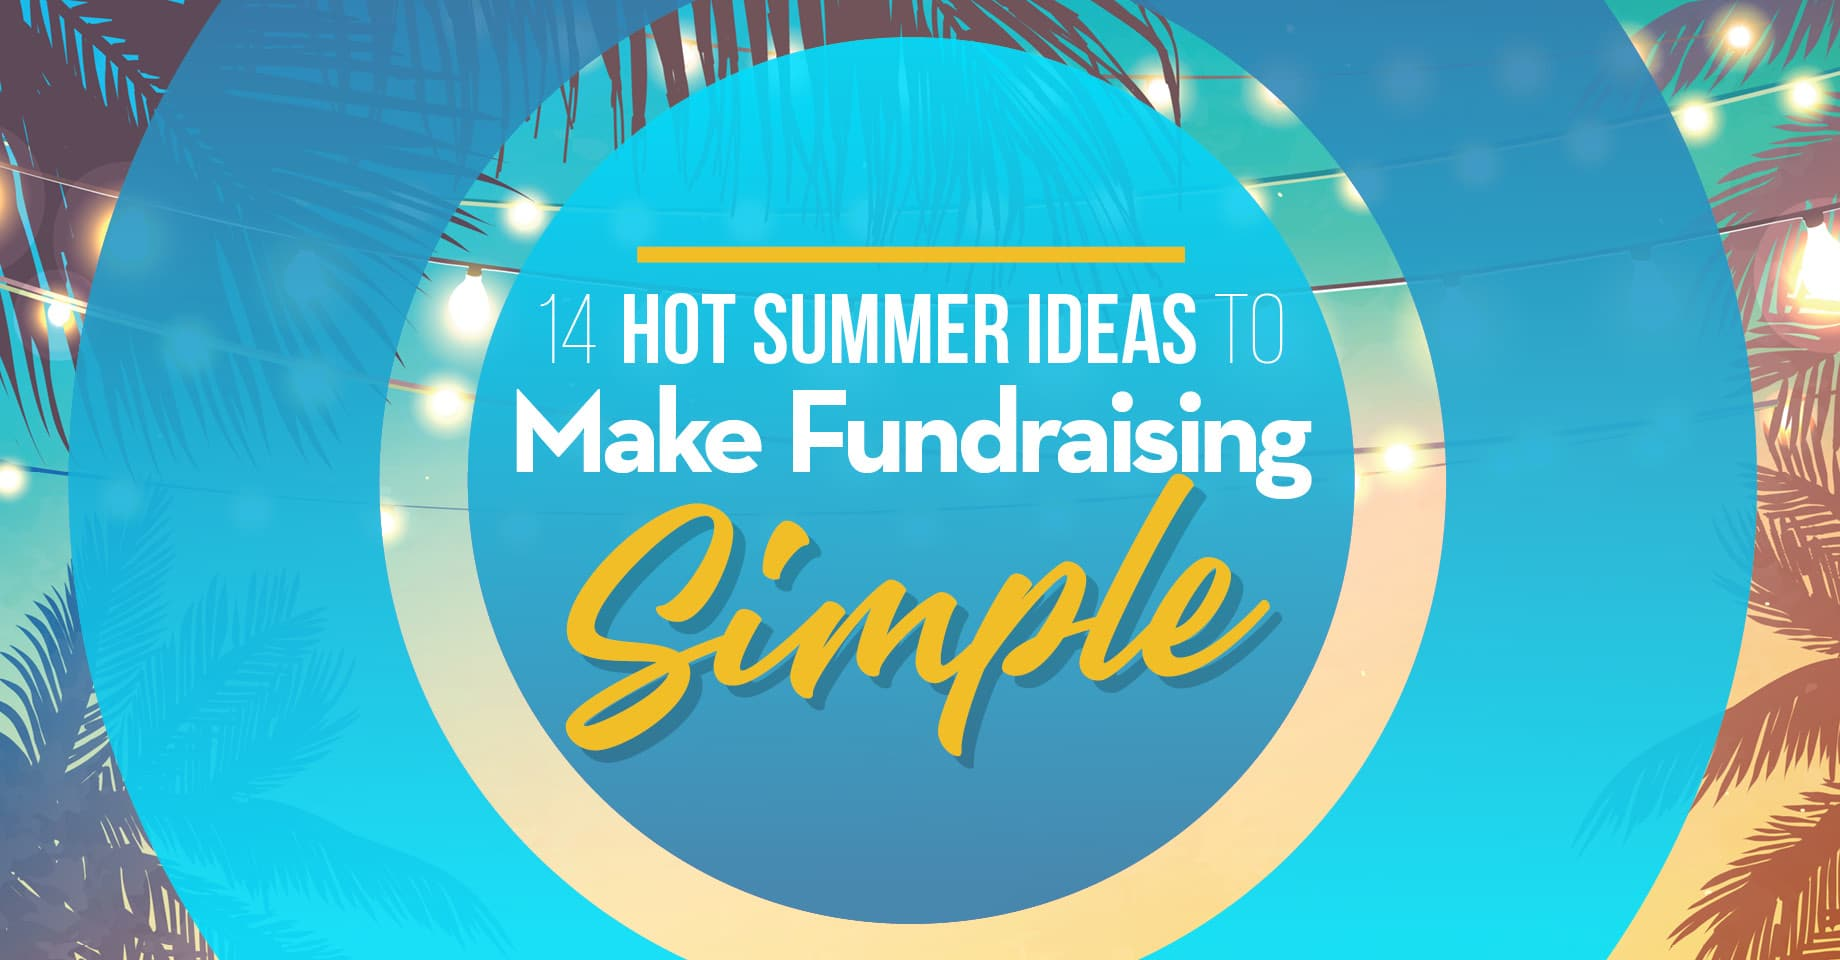 14 Hot Summer Fundraising Ideas to Make Fundraising Simple